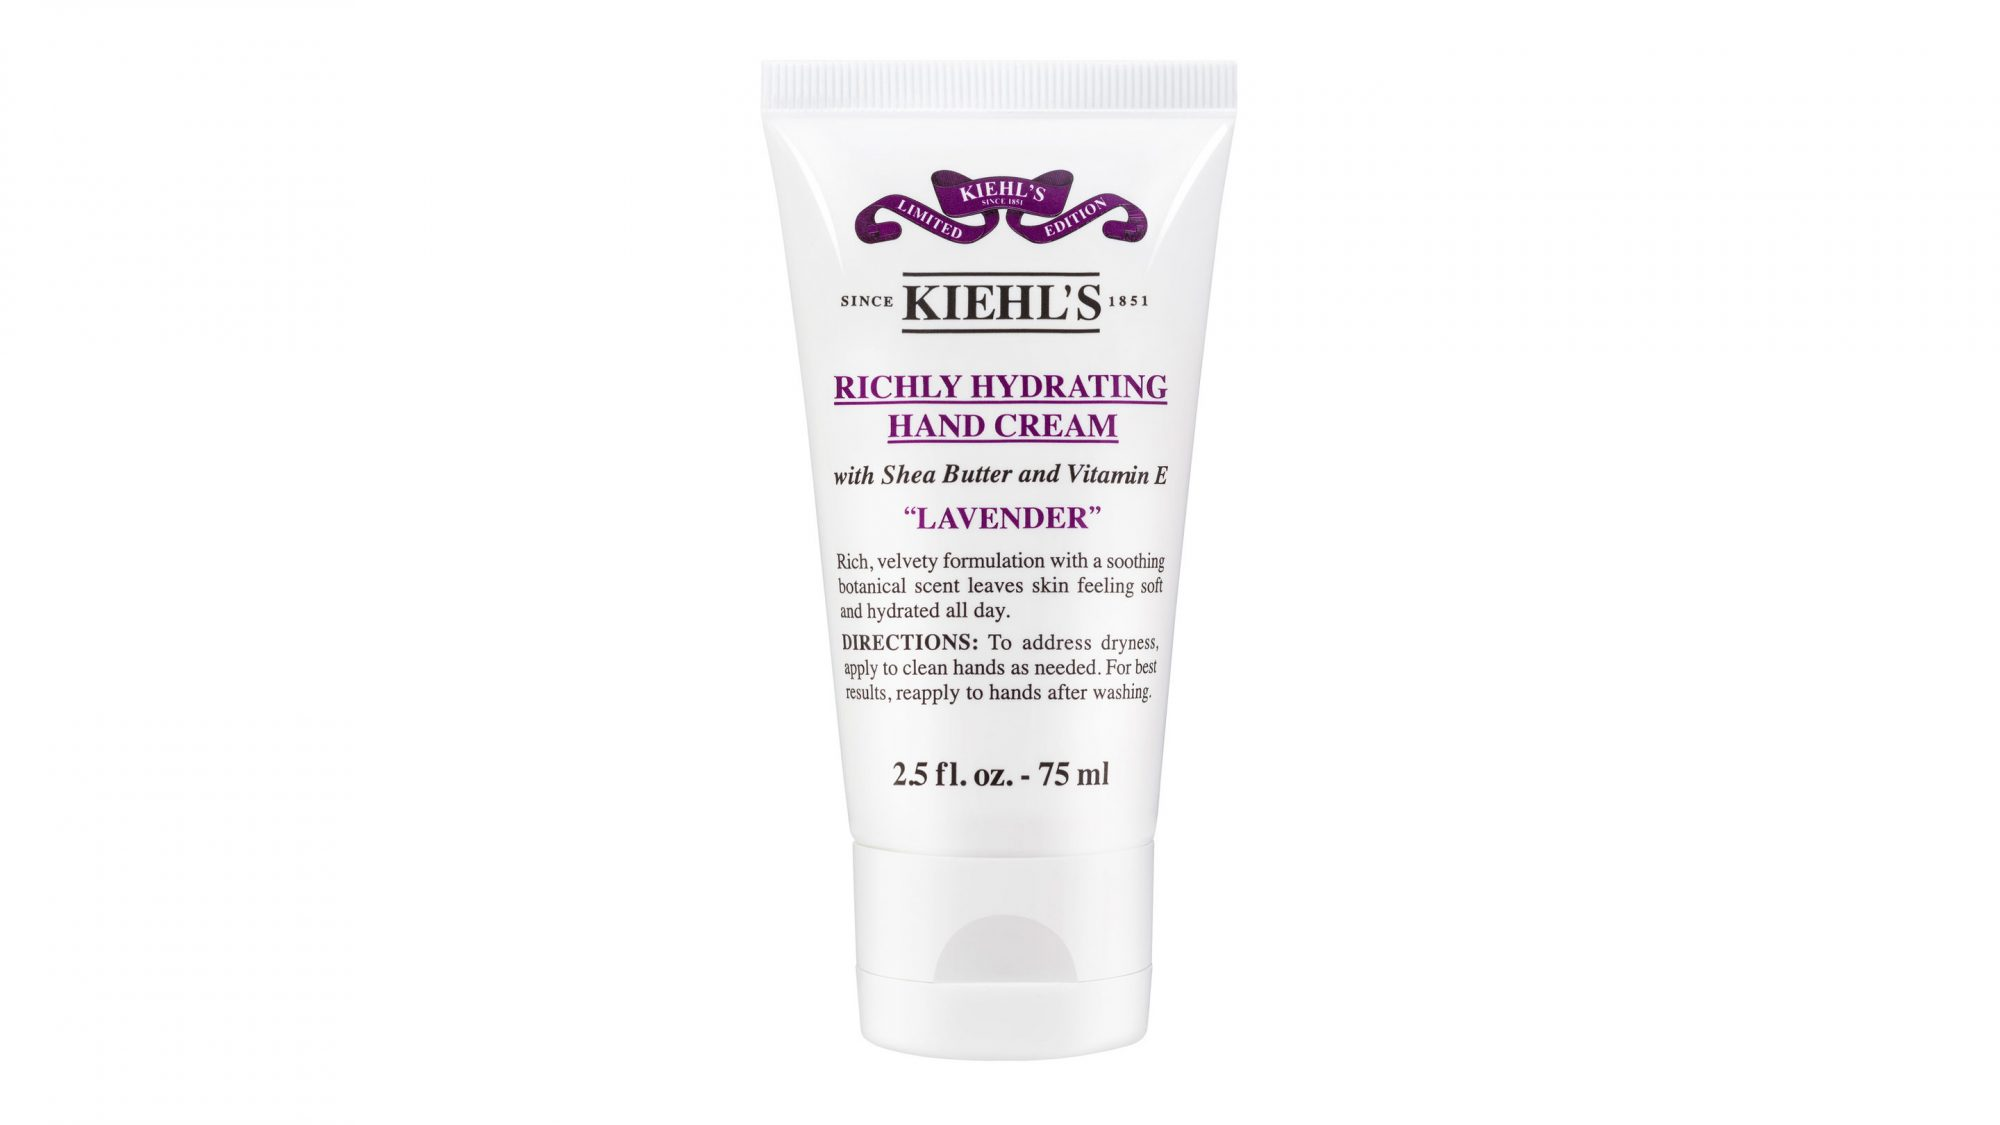 Kiehl's Richly Hydrating Scented Hand Cream